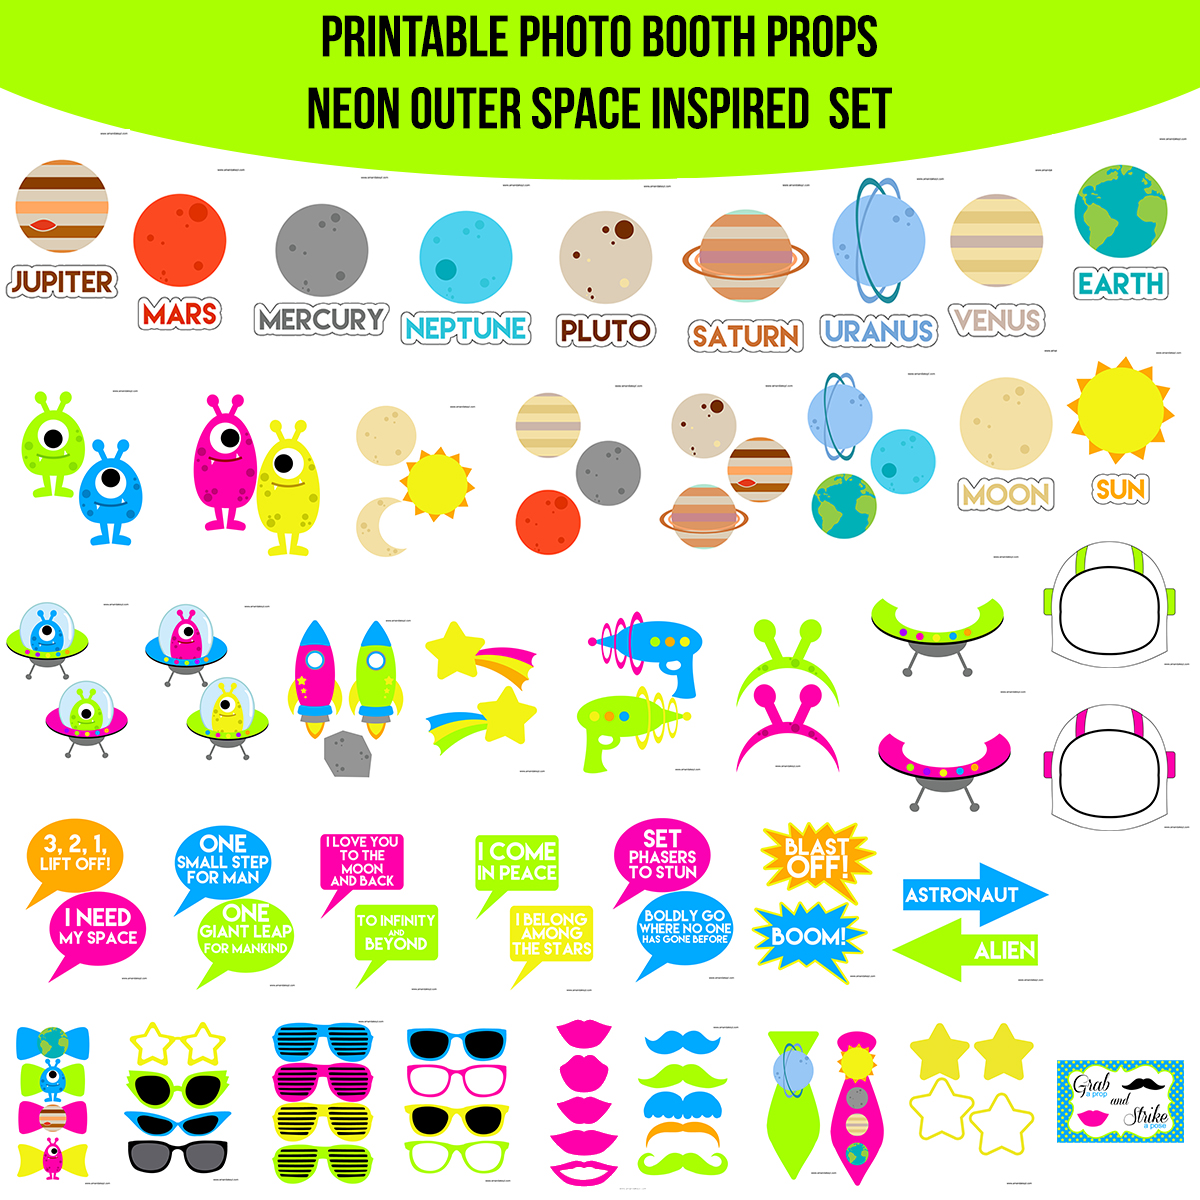 See the Set - To View The Whole Neon Outer Space Printable Photo Booth Prop Set Click Here